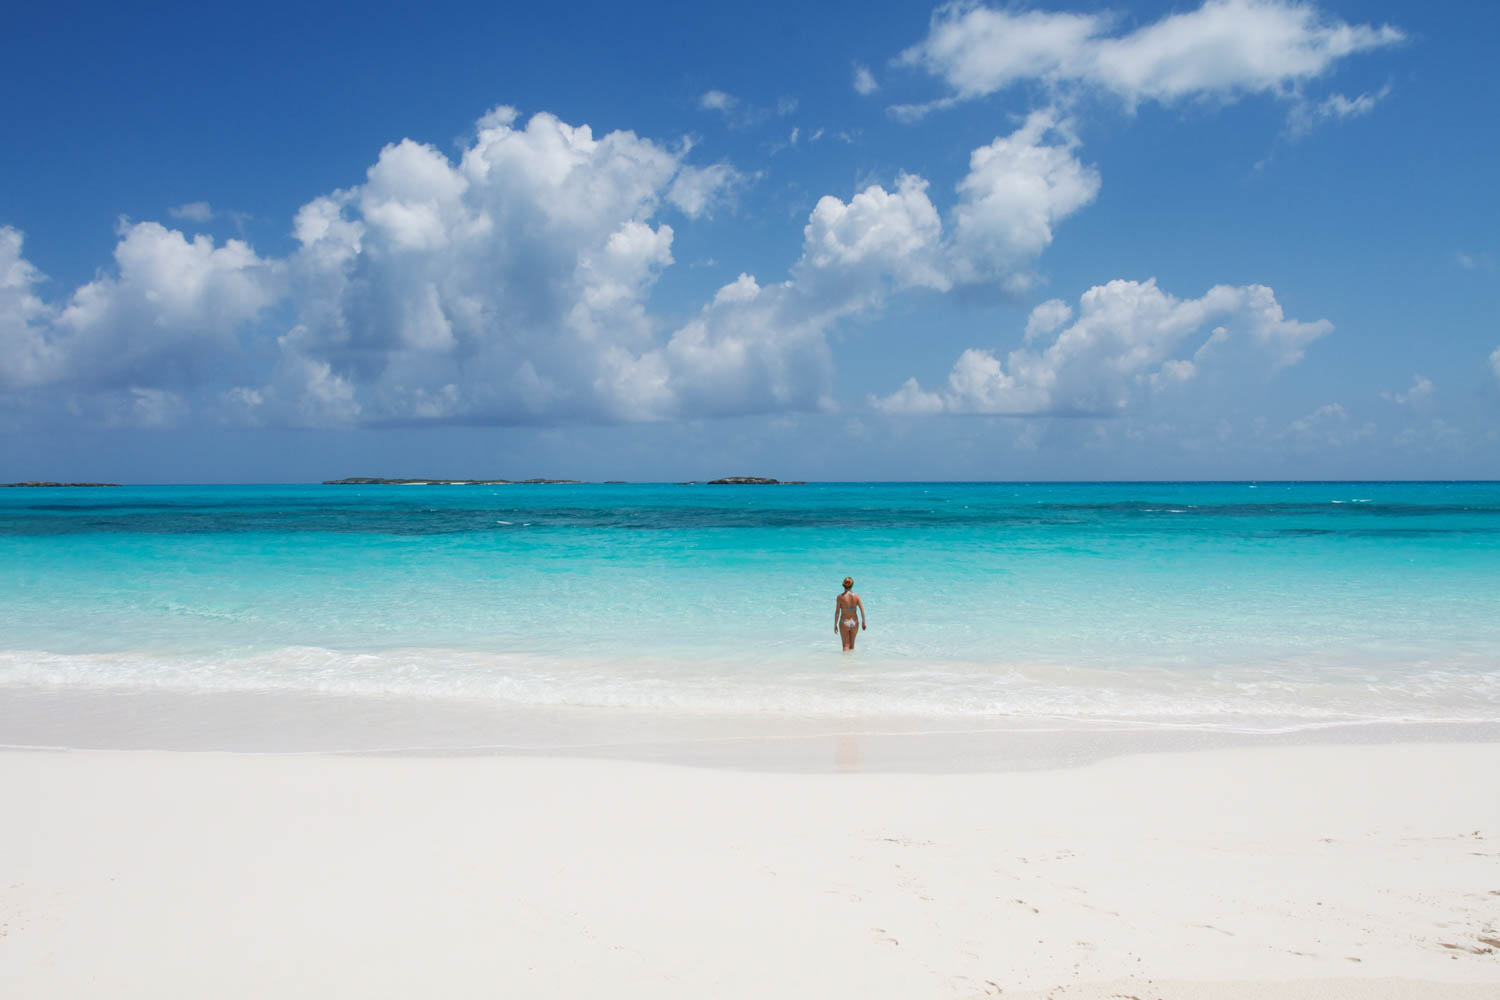 White sand beach in the Exuma Cays of the Bahamas. Exuma tours from Nassau to Pig Island available every day.